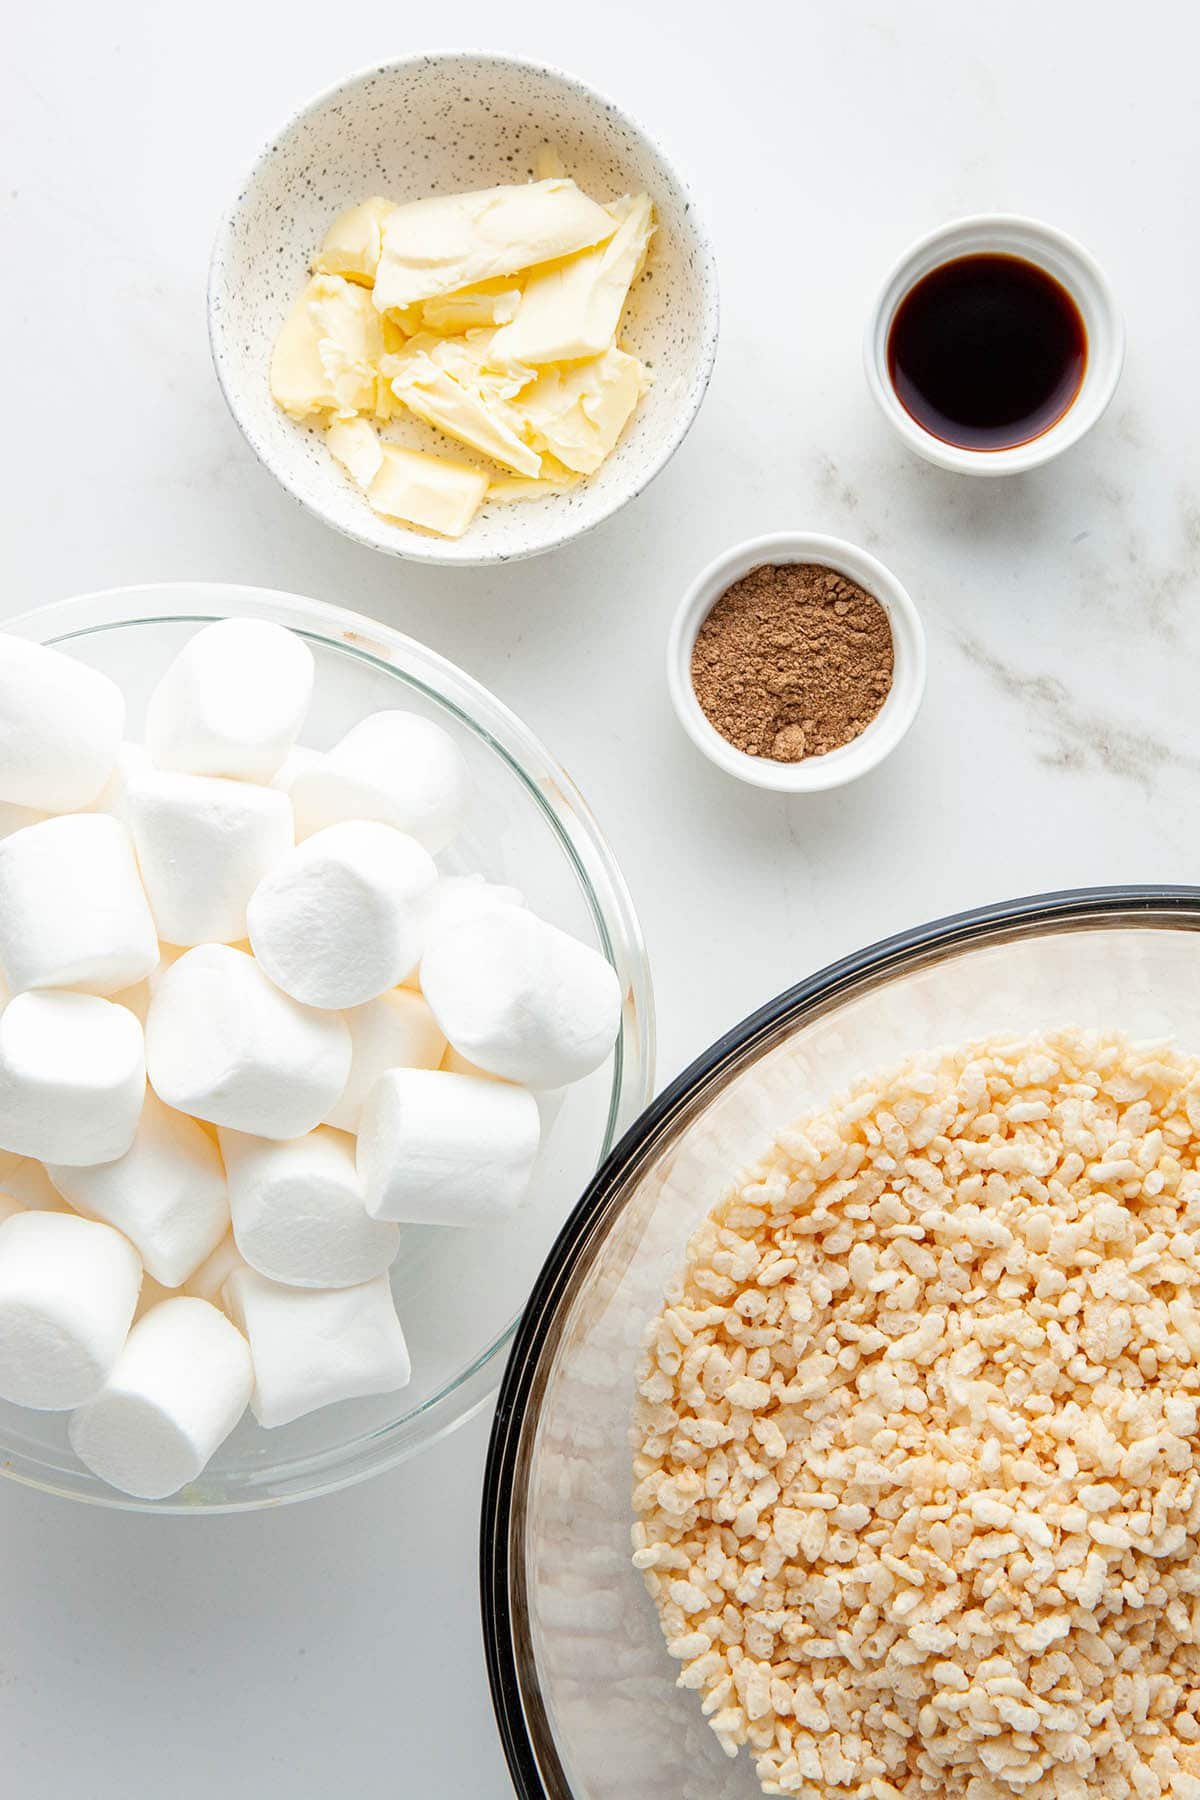 Ingredients to make chai-spiced Rice Krispie treats laid out on a white stone surface.